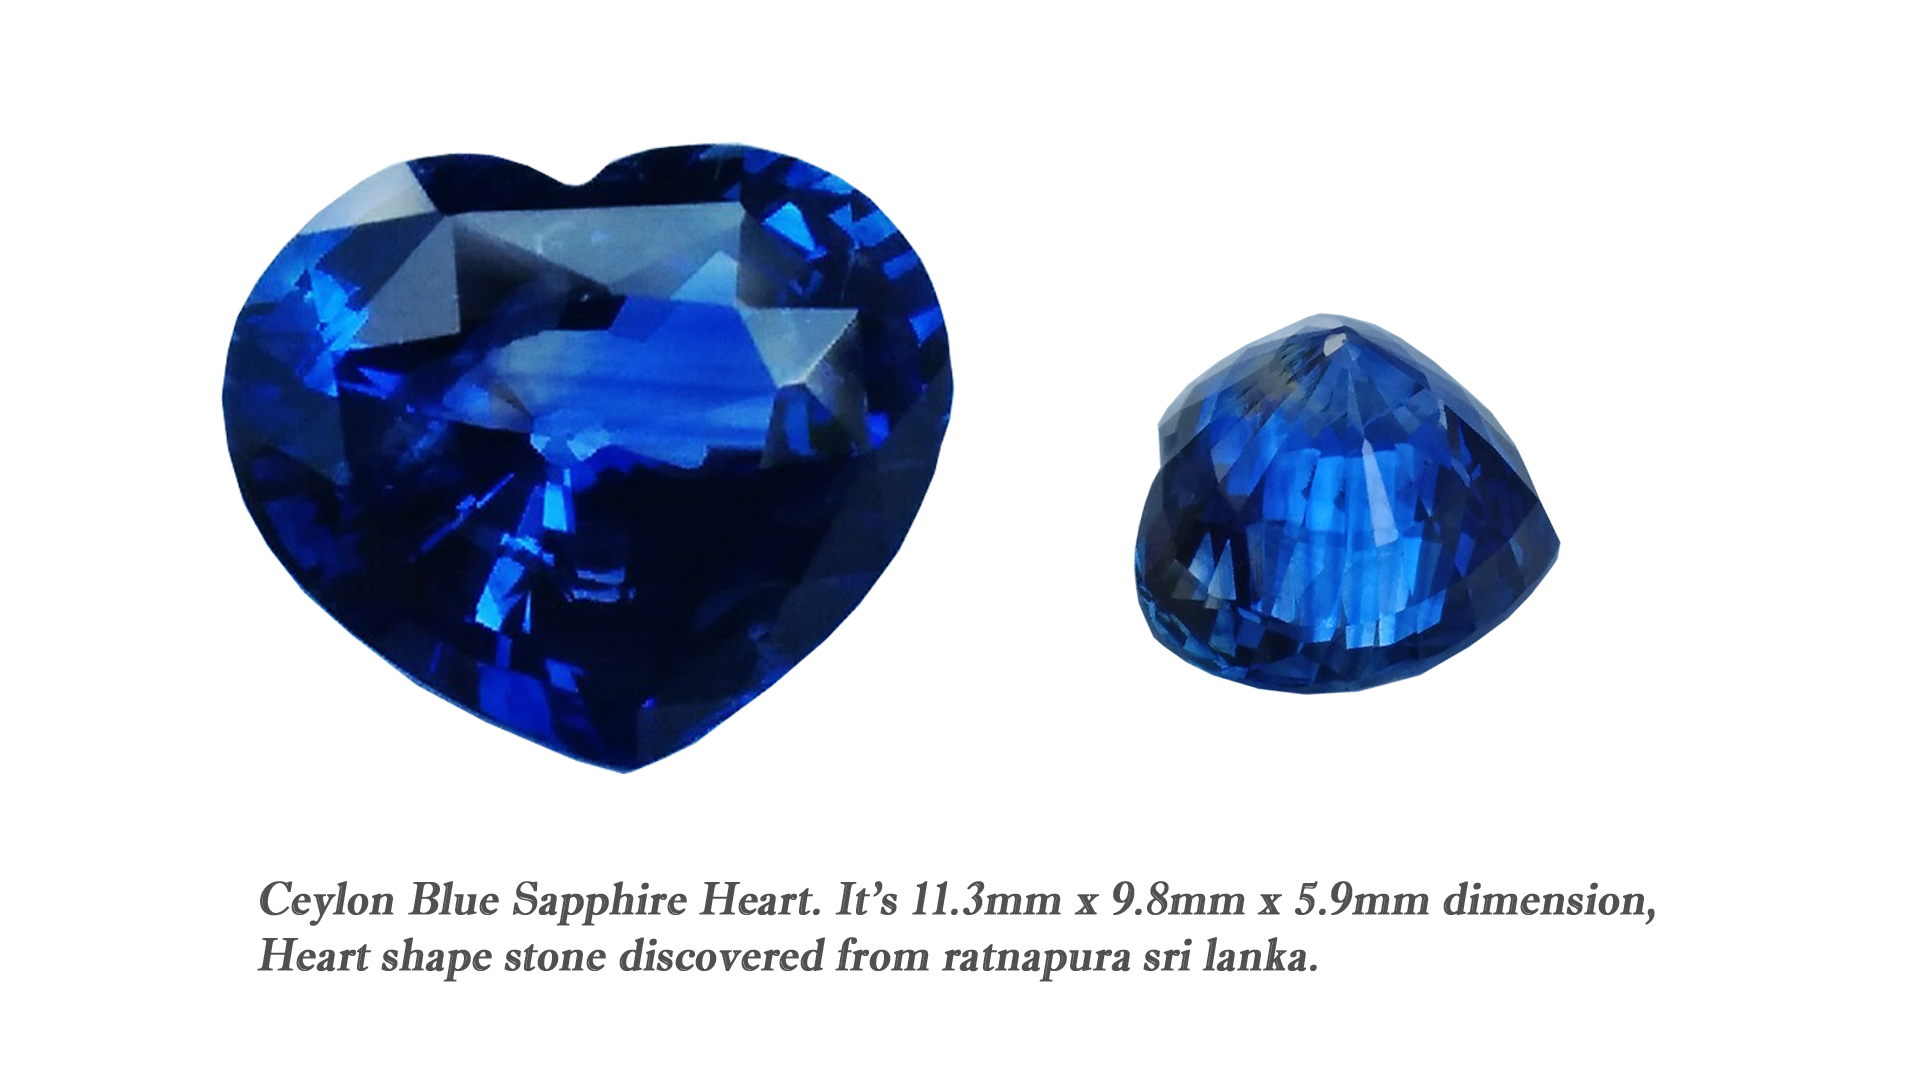 Ceylon Natural Blue Sapphire Dimension : 9.8mm x 11.3mm x 5.9mm Weight : 5.15Cts Locality : Ratnapura, Sri Lanka Shape : Heart Sapphire is a precious gemstone, a variety of the mineral corundum, consisting of aluminium oxide with trace amounts of elements such as iron, titanium, chromium, copper, or magnesium. Sapphire helps the user stay on the Spiritual Path, boosting psychic and spiritual powers, and is a great stone for Earth and Chakra healing. also, all corundums share some energies in common, the various colours of Sapphire have individual vibrational signatures and different spiritual properties. Sapphire was used by the Etruscans over 2,500 years ago and was also prized in ancient Rome, Greece and Egypt. Revered as a stone of royalty, sapphire was believed to keep kings safe from harm or envy. Blue Sapphire stimulates theThroat Chakra, the voice of the body. Blue crystal energy will unblock and balance the Throat Chakra. blue encourage the power of truth, while lighter shades carry the power of flexibility, relaxation, and balance. Blue Sapphire can free one of mental anxiety, helps make one detached, and protects against envy. Also, It can be worn forgoodluck and for protection against evil spirits. Since Saturn rules the nervous system,blue sapphireshelp problems of the nerves-tension and neuroses-diseases caused by an afflicted Saturn.